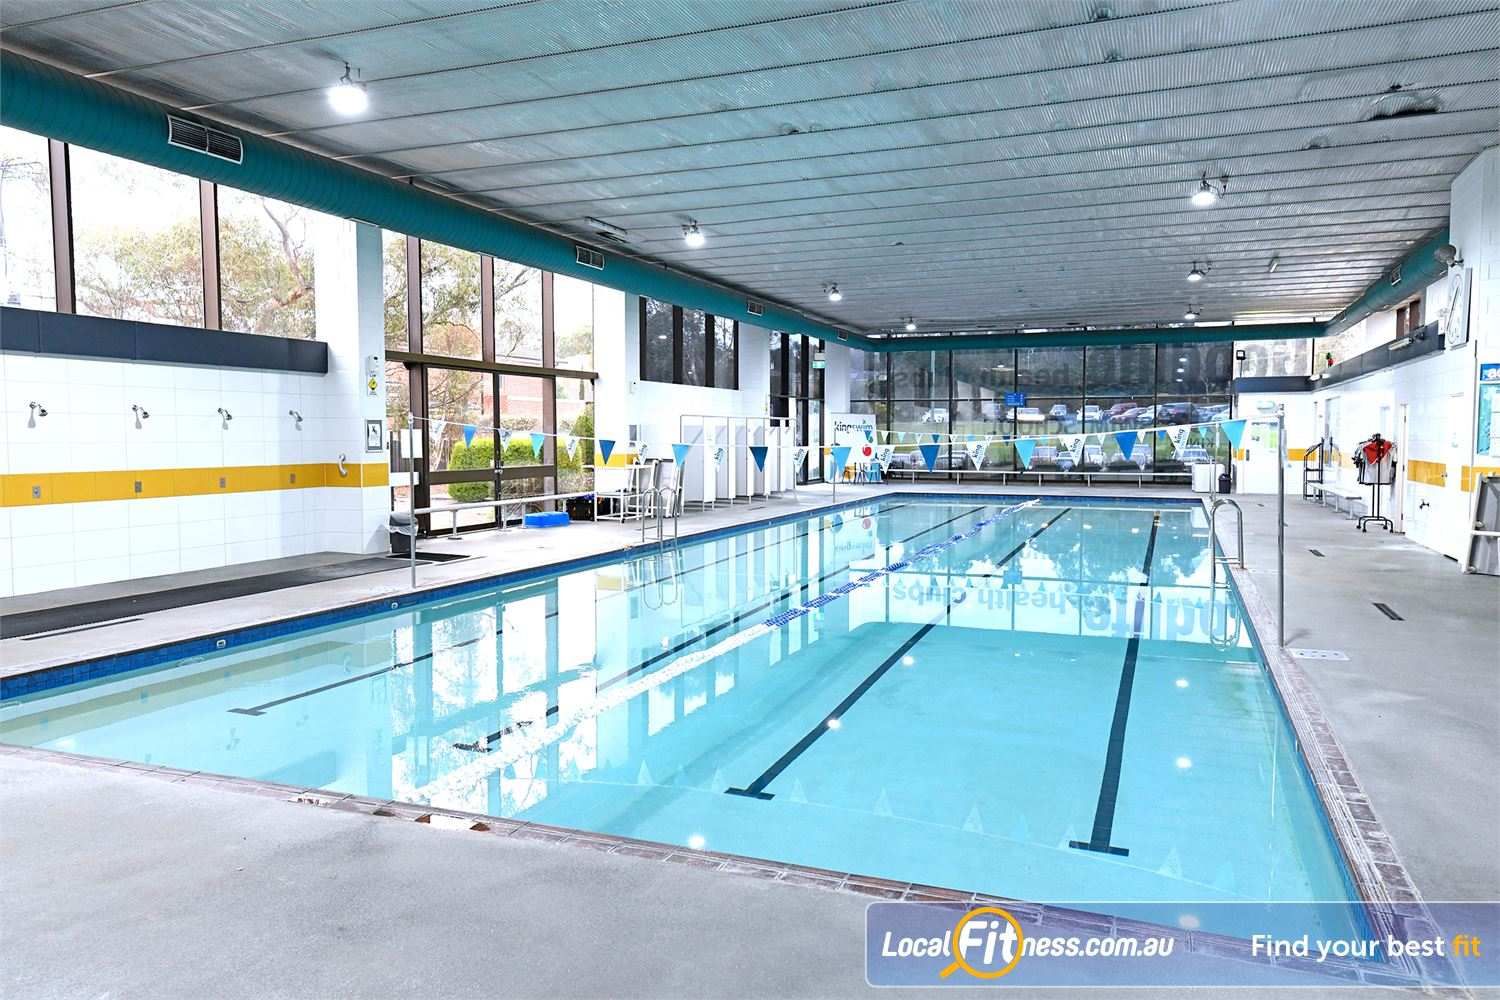 Goodlife health clubs swimming pool near knoxfield multi lane wantirna swimming pool perfect for Swimming pool finance companies